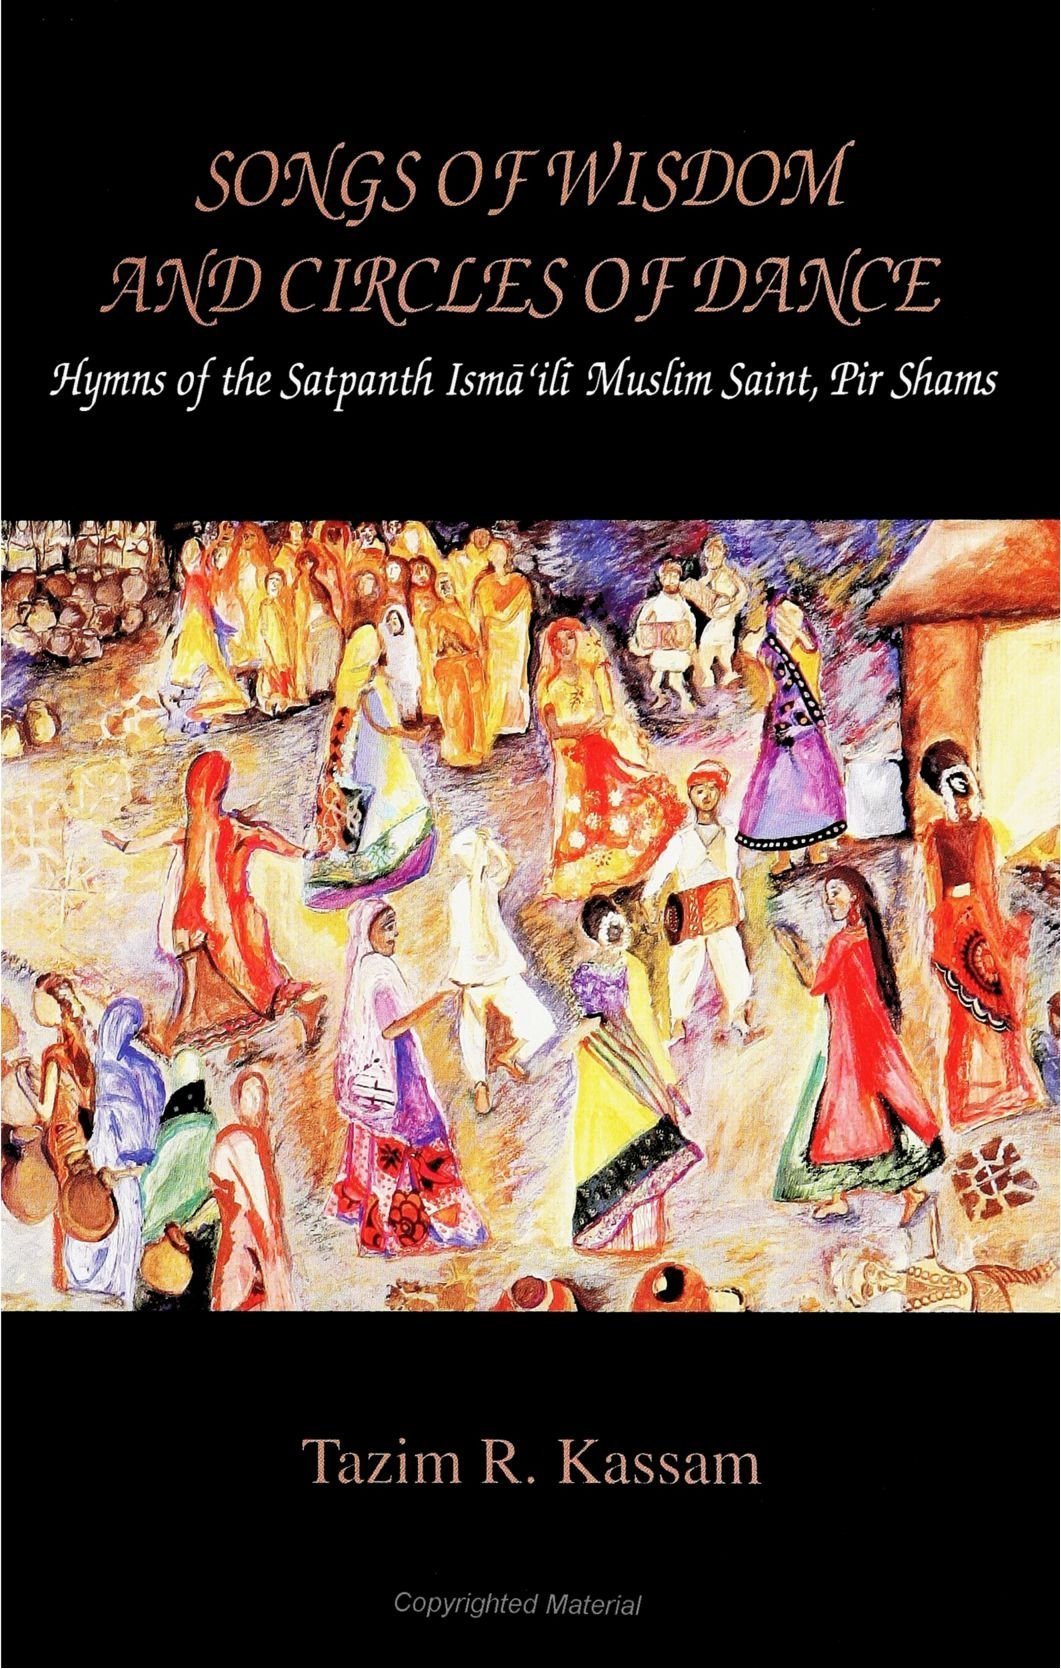 Songs of Wisdom and Circles of Dance: Hymns of the Satpanth Isma'ili Muslim Saint, Pir Shams